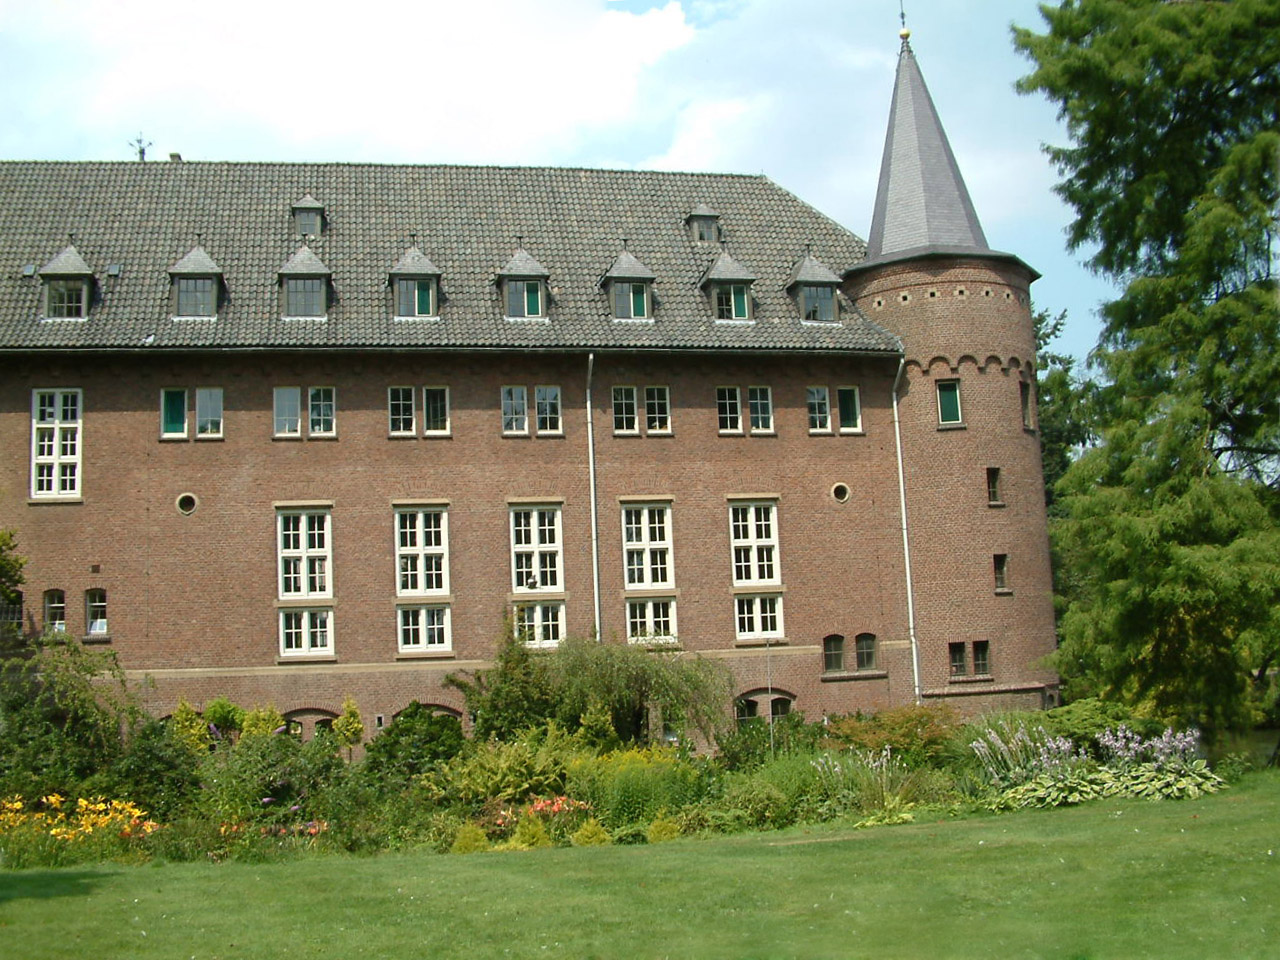 exterior view of castle gemert